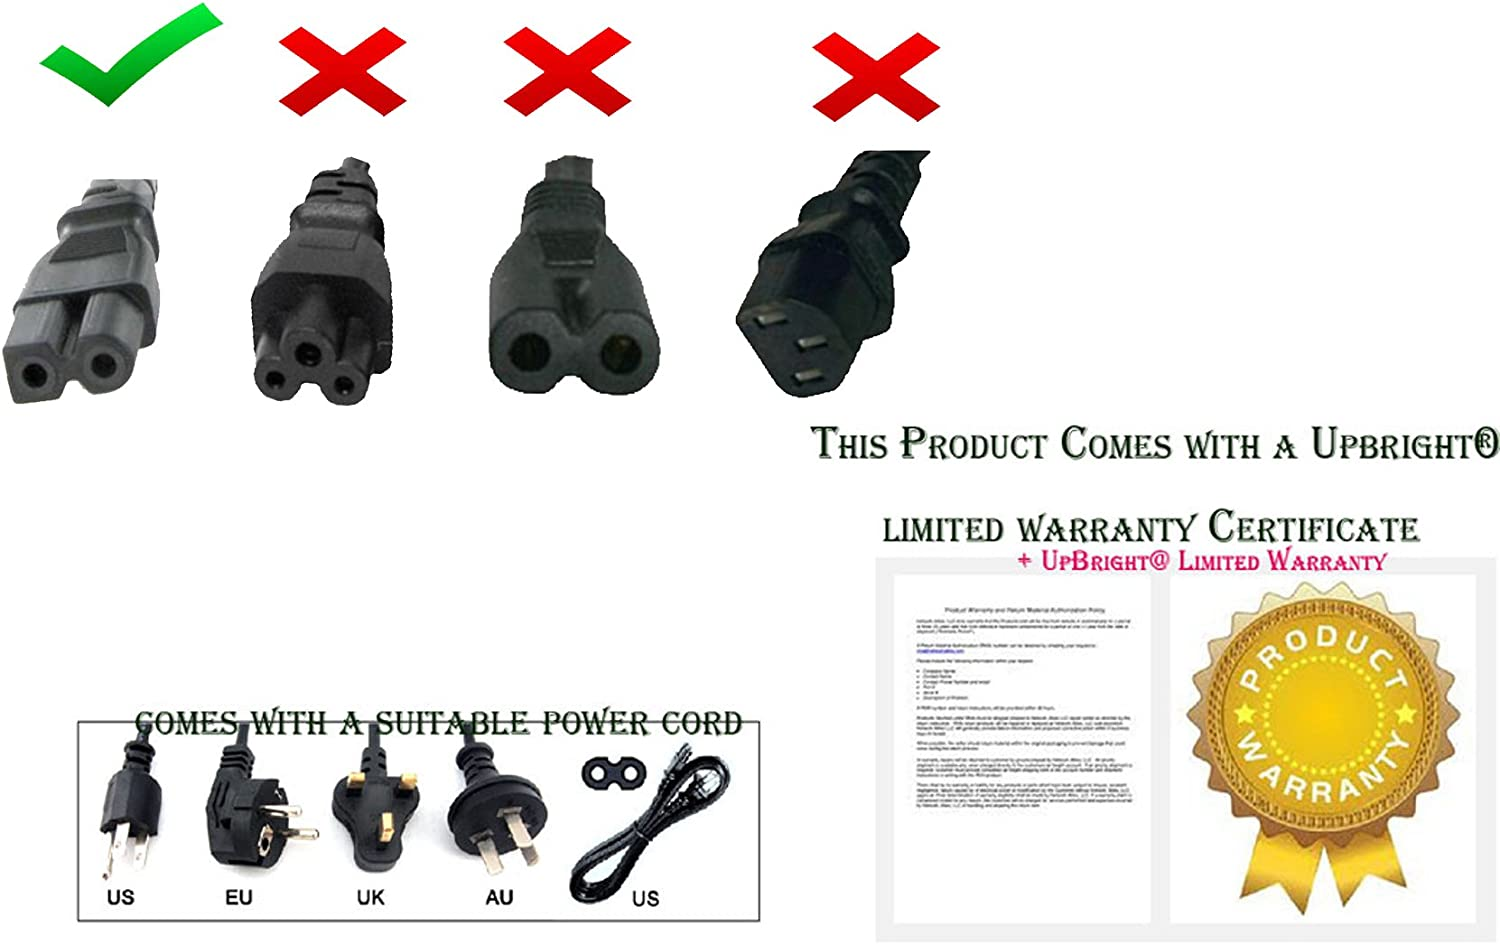 UpBright AC IN Power Cord Cable For SINGER Sew Mate Sewing Machine Series 5400 5500 5625 6160 120 125 130 135 140 145 150 153 155 160 163 165 170 180 185 190 200 220 Brother 845 NS40 FS40 NV1000 NX600